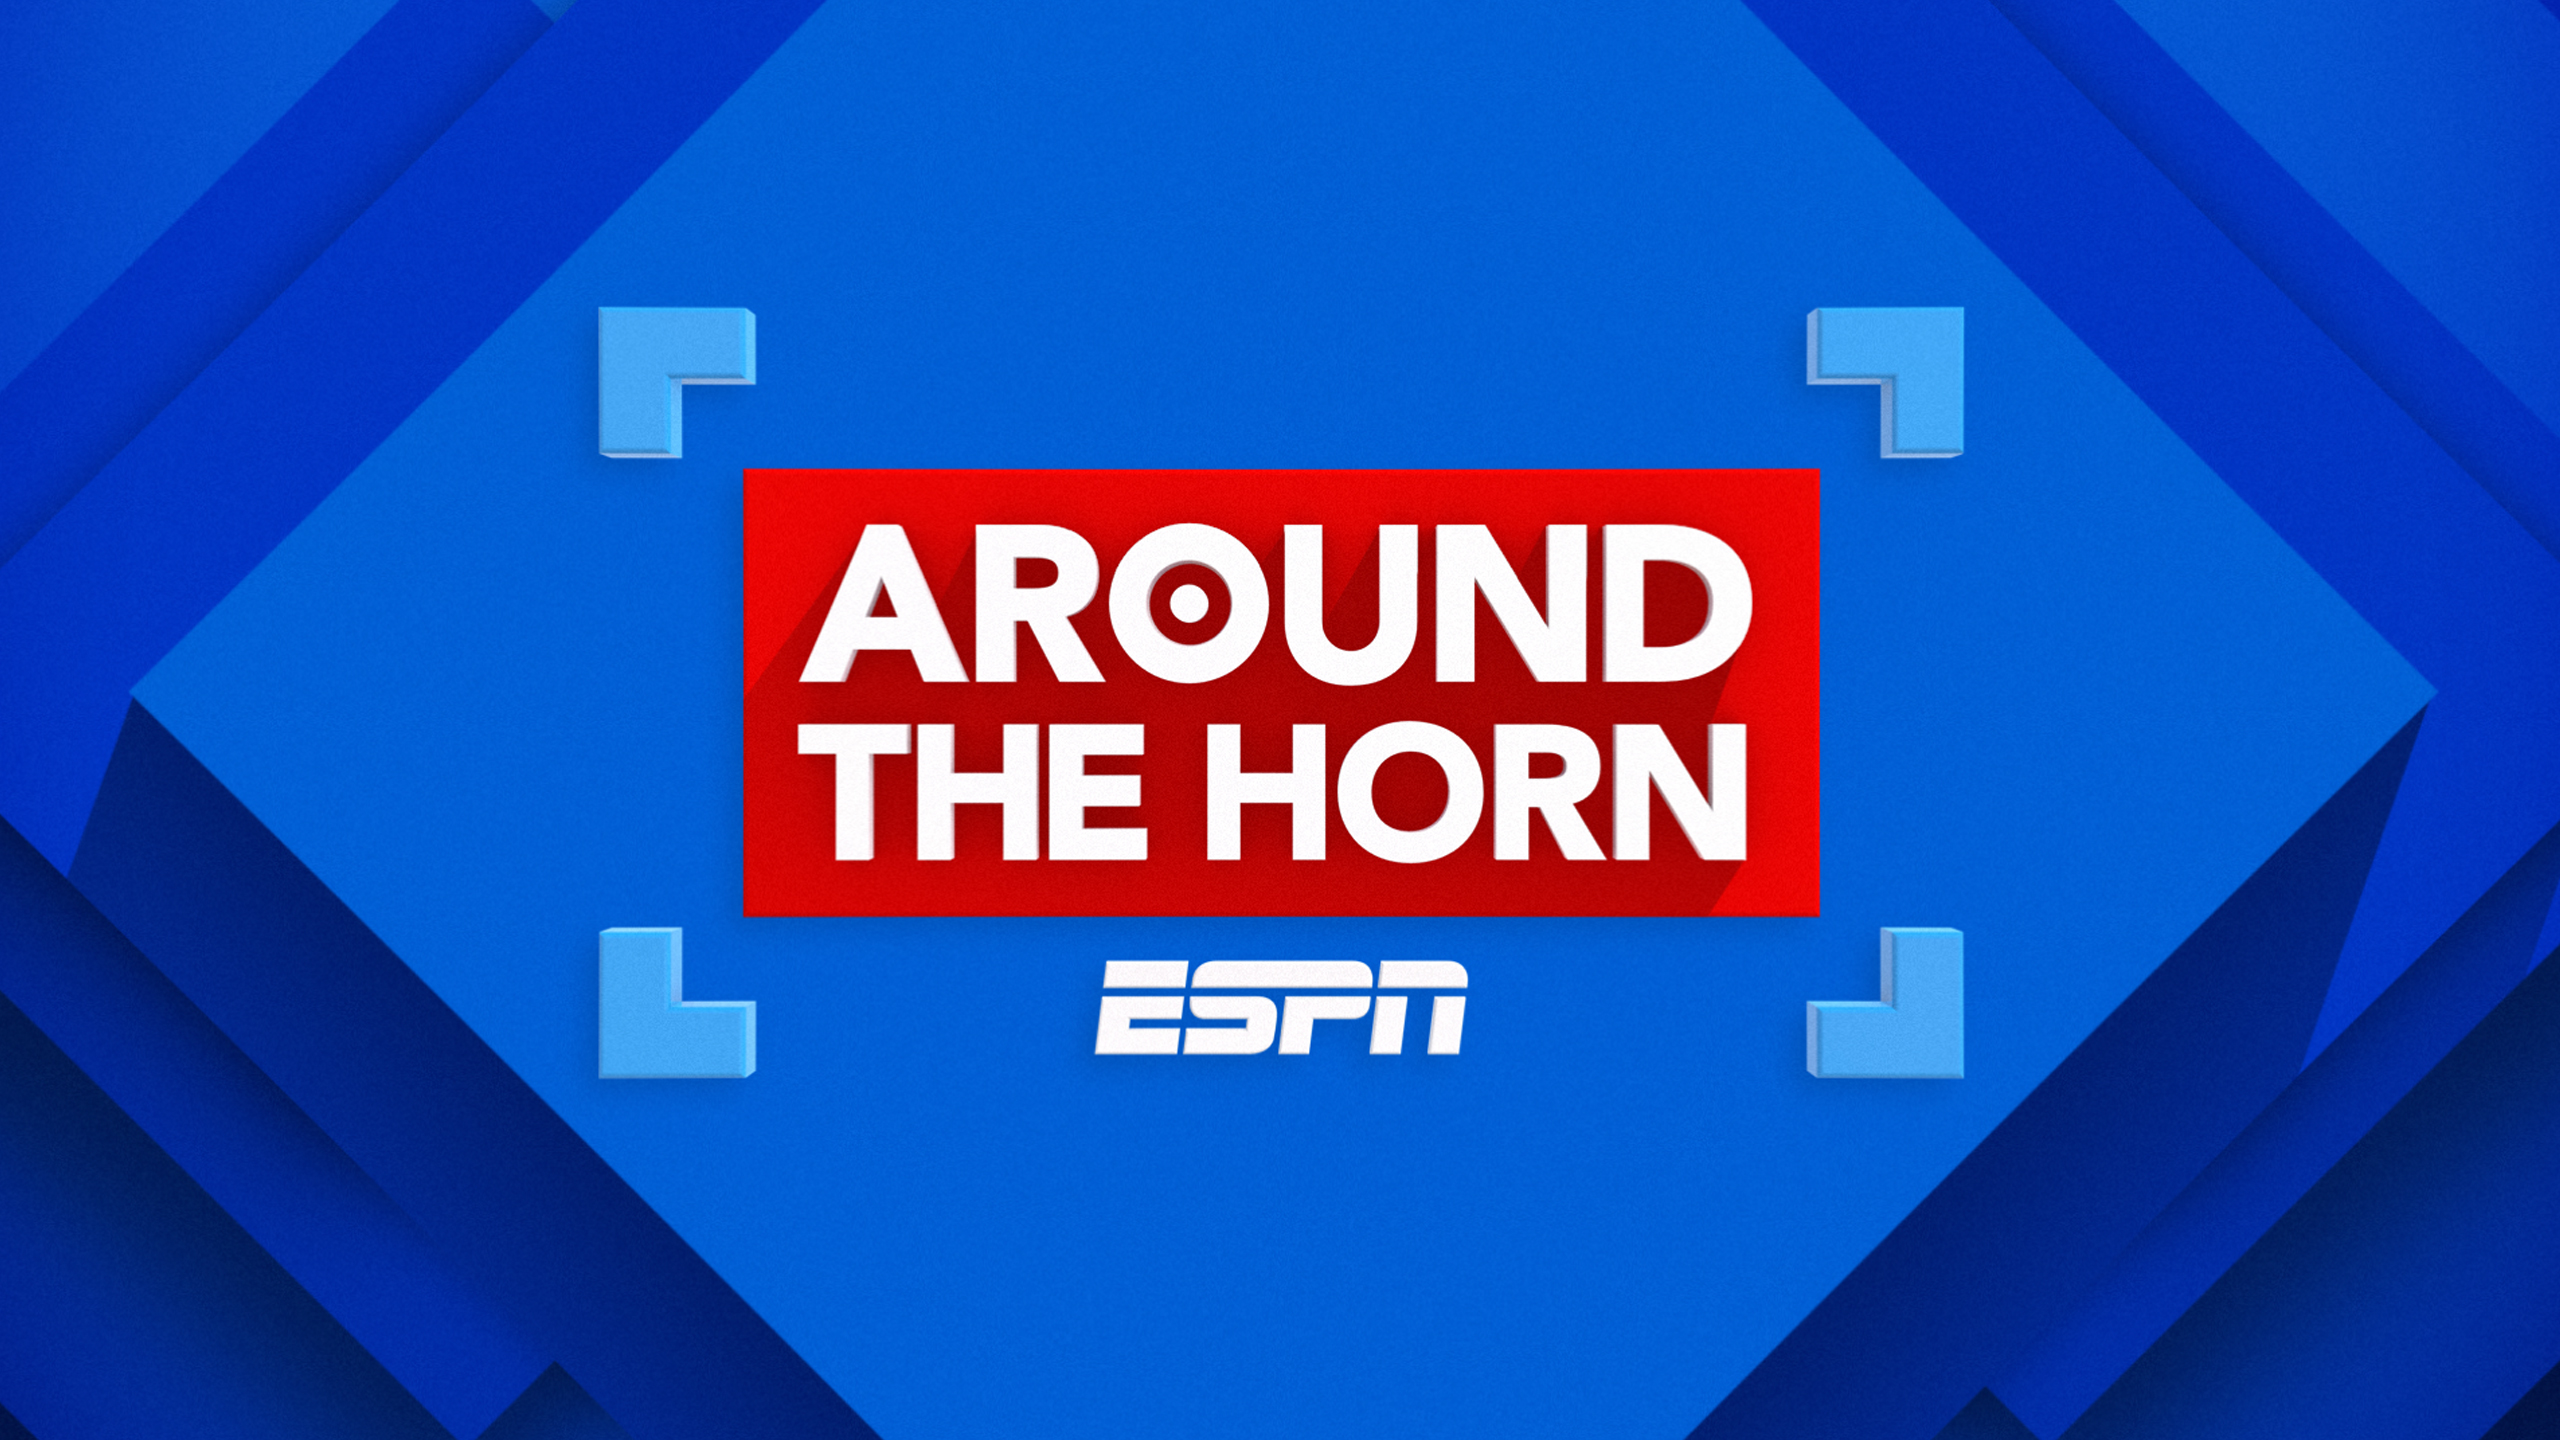 Thu, 2/14 - Around The Horn